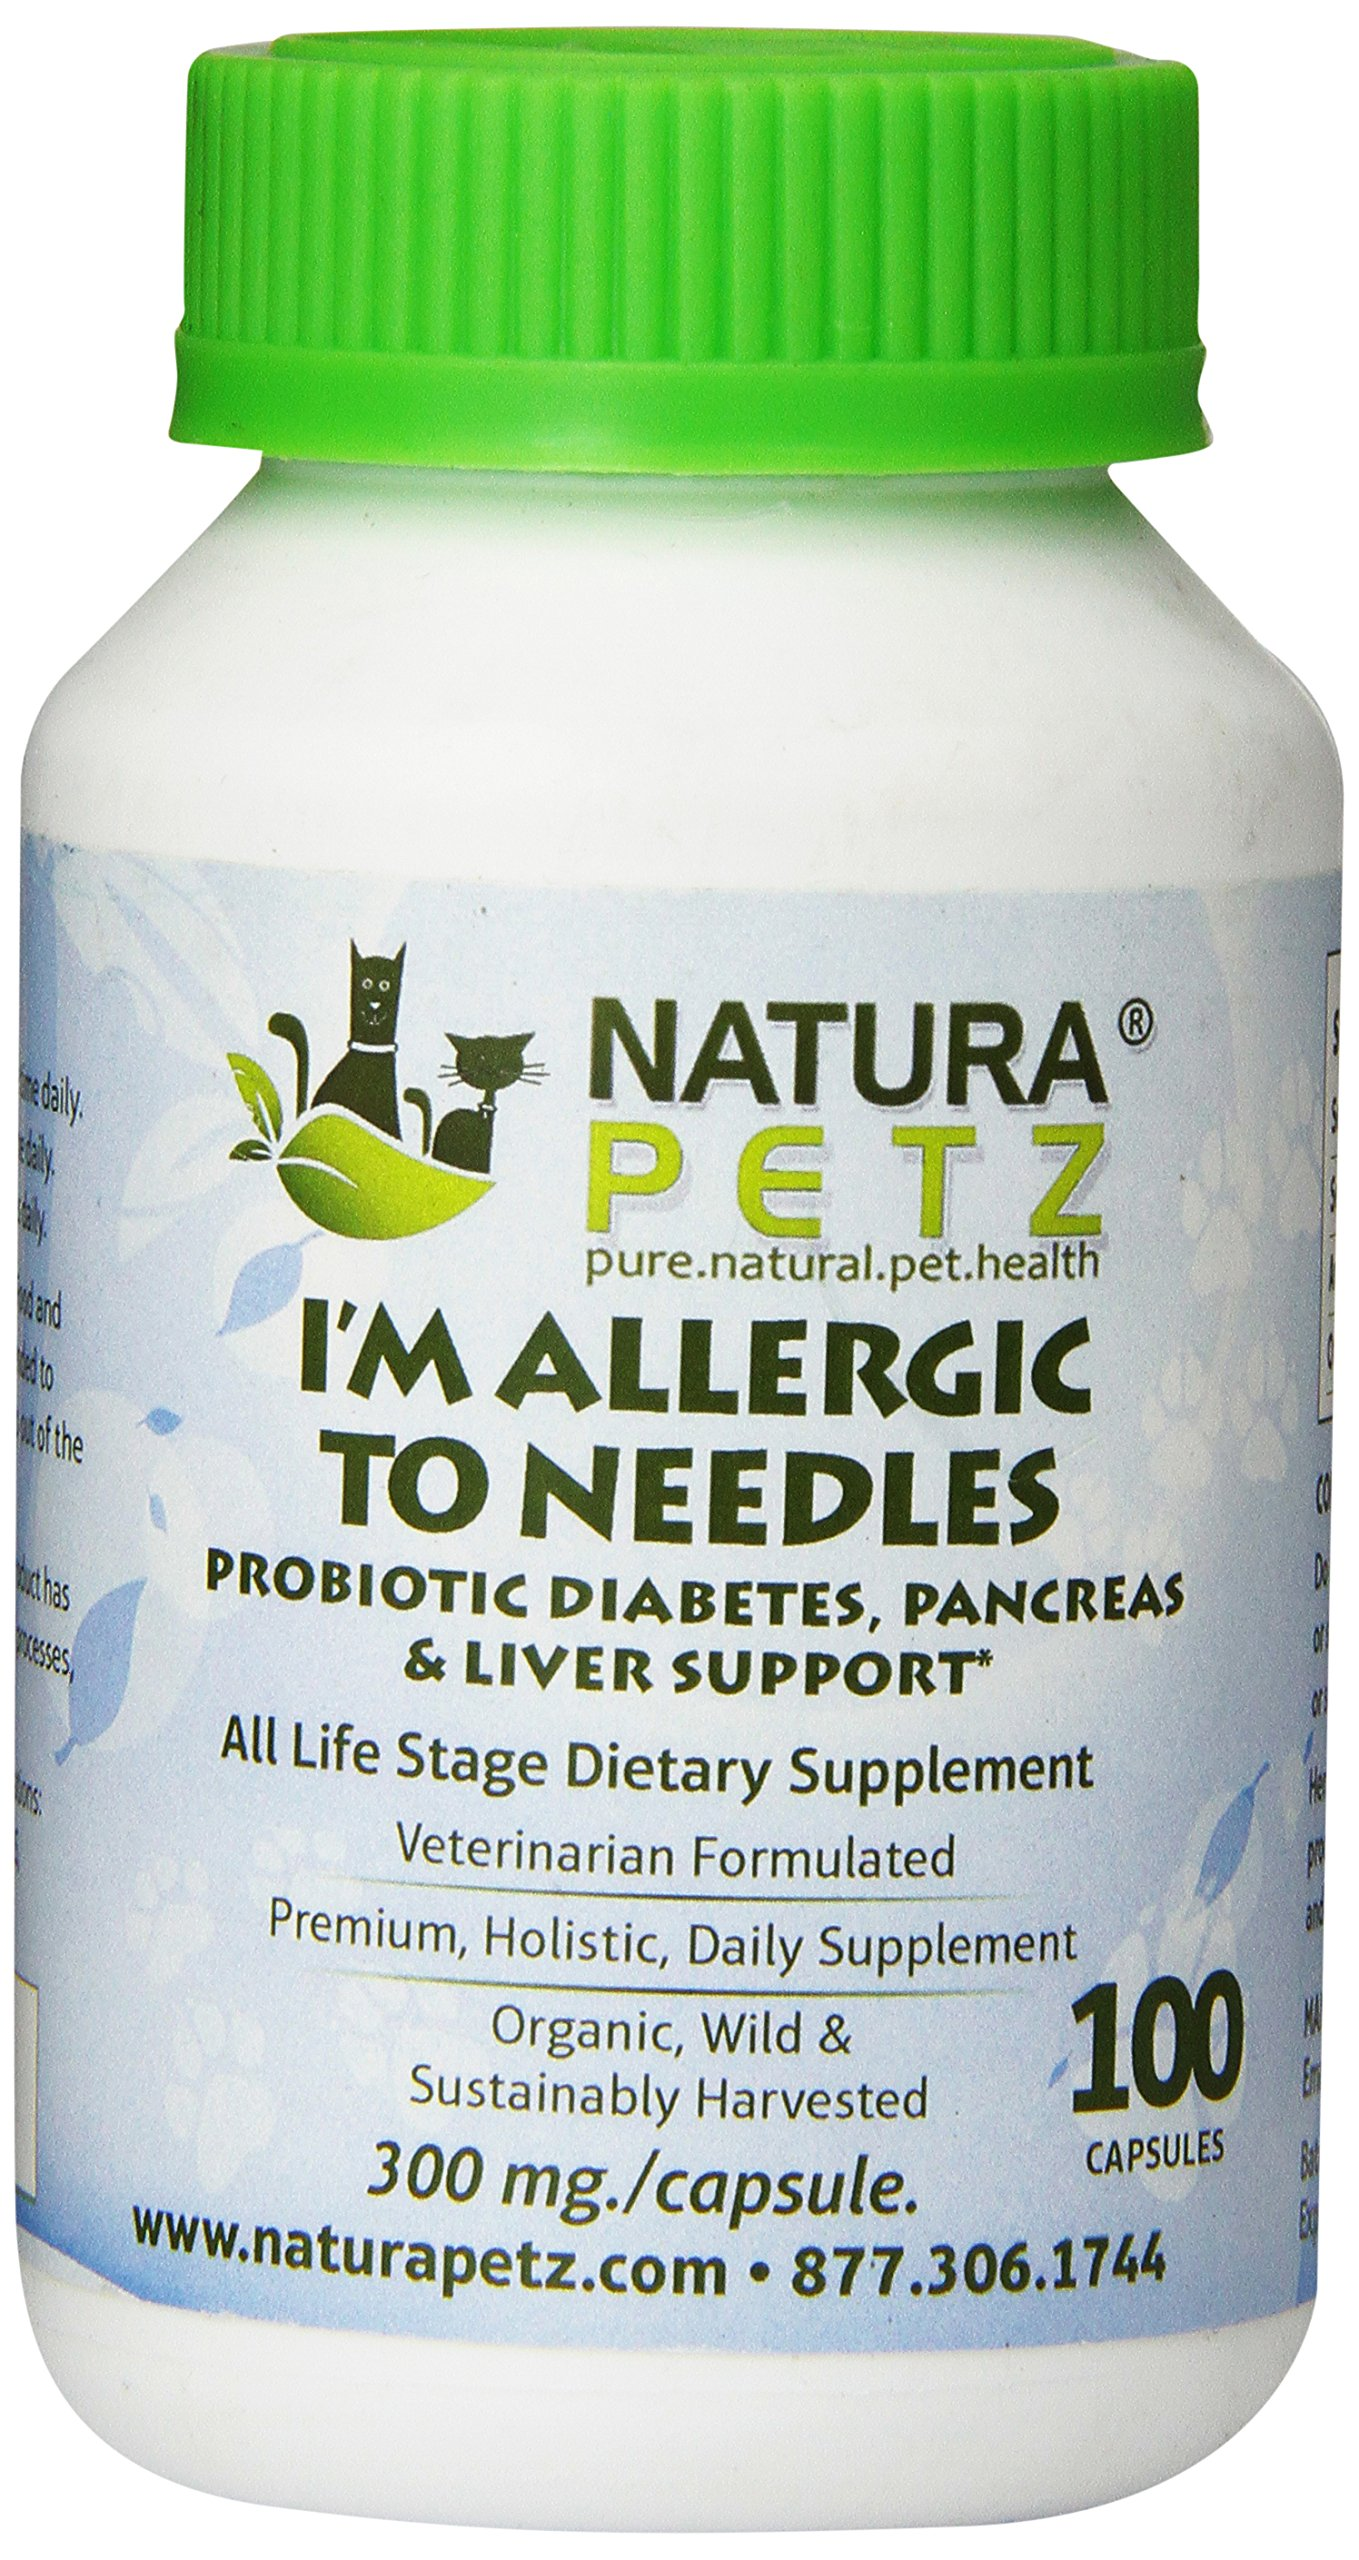 Natura Petz I'm Allergic to Needles Probiotic Diabetes, Pancreas, Liver and Insulin Resistance Support for Pets, 100 Capsules, 300mg Per Capsule